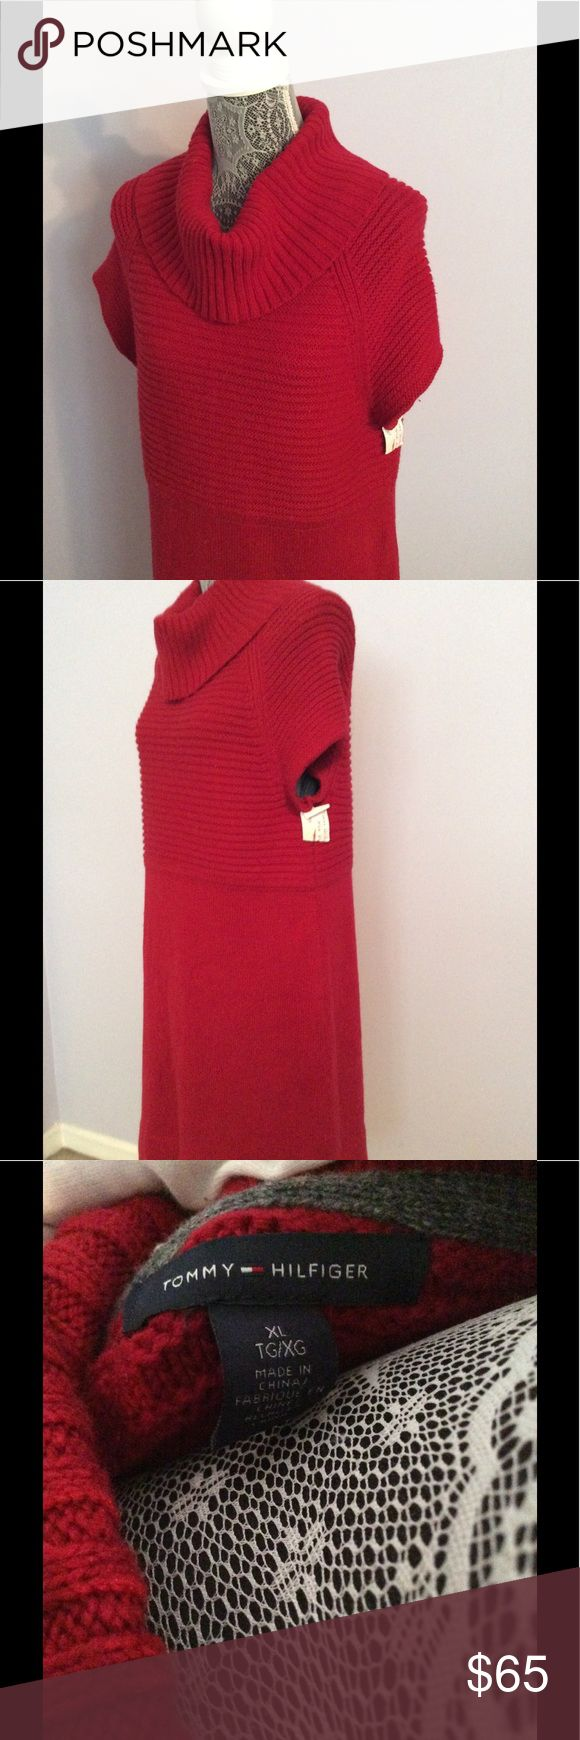 Tommy Hilfiger Tommy Hilfiger short sleeve red sweater dress, above the knee; can be worn as a tunic over leggings. Size XL. Tommy Hilfiger Dresses